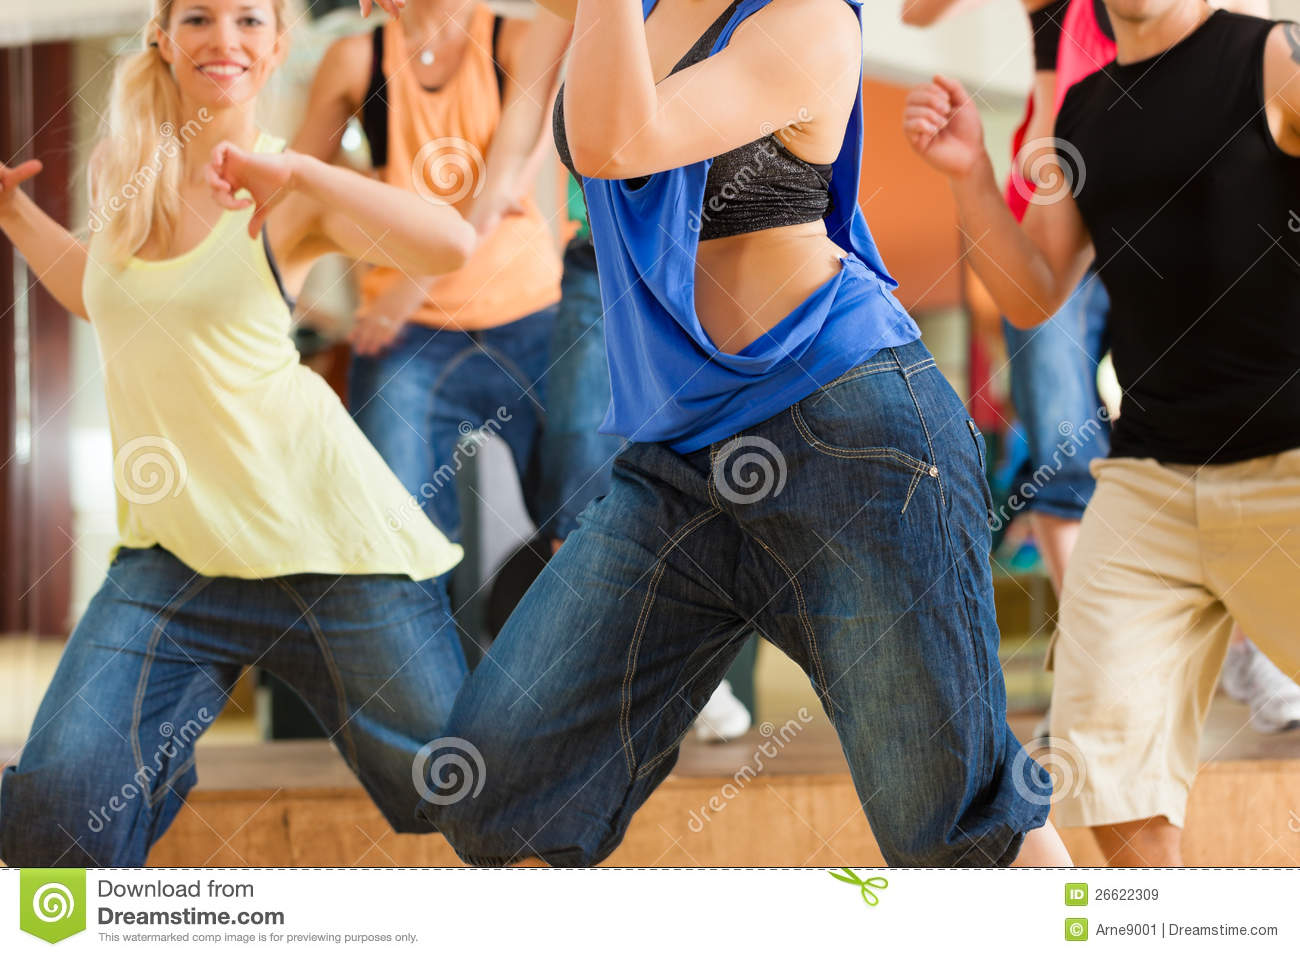 Zumba or Jazzdance - people dancing in studio